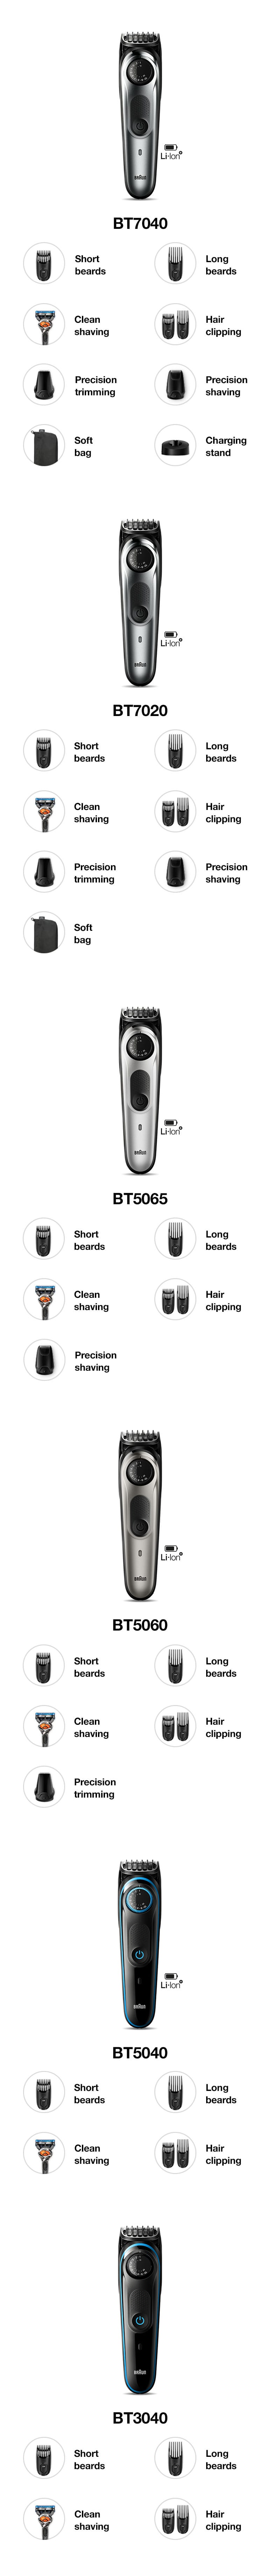 Beard trimmer comparison